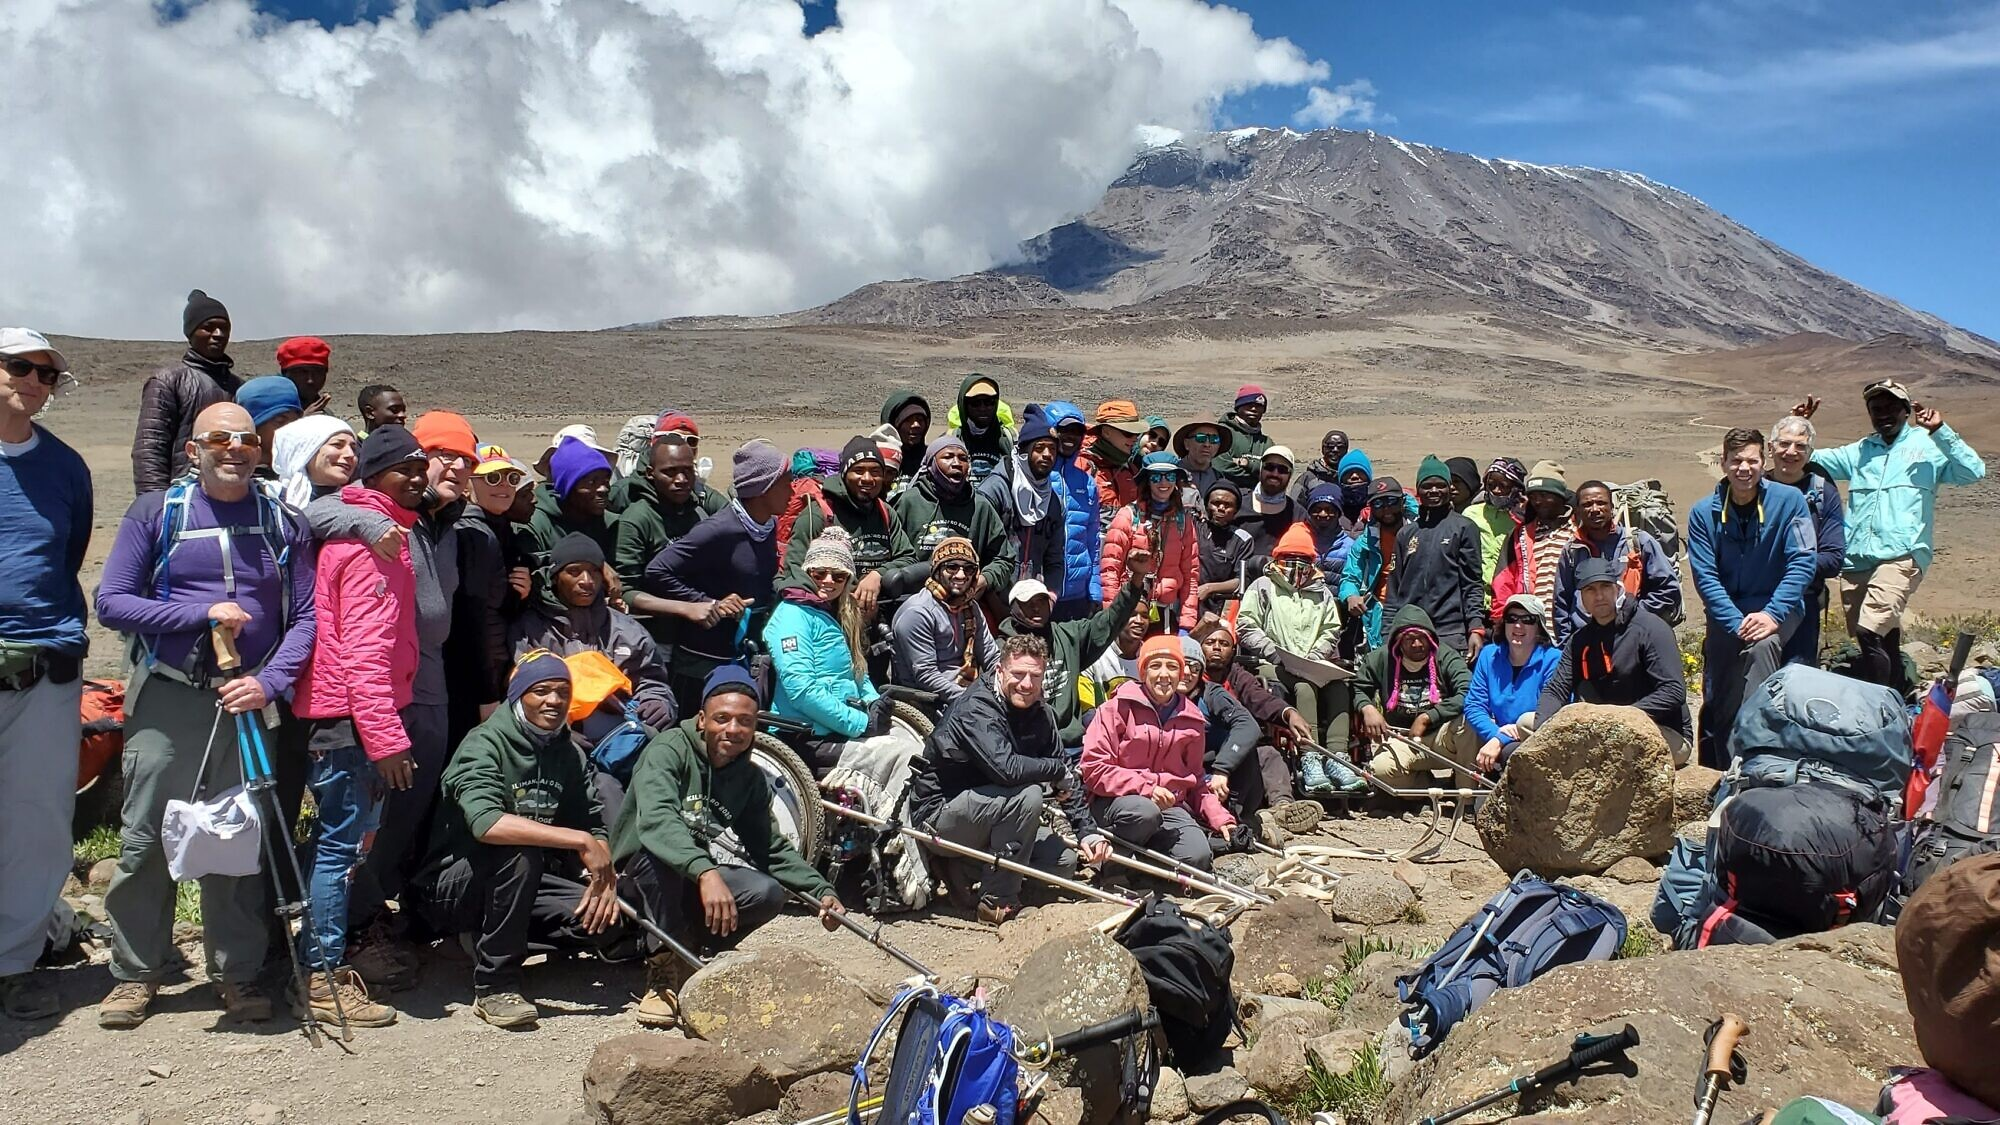 A group shot of the some 25 participants on the Friends of Access Israel (FAISR) climb up Mount Kilimanjaro. Credit: Friends of Access Israel.